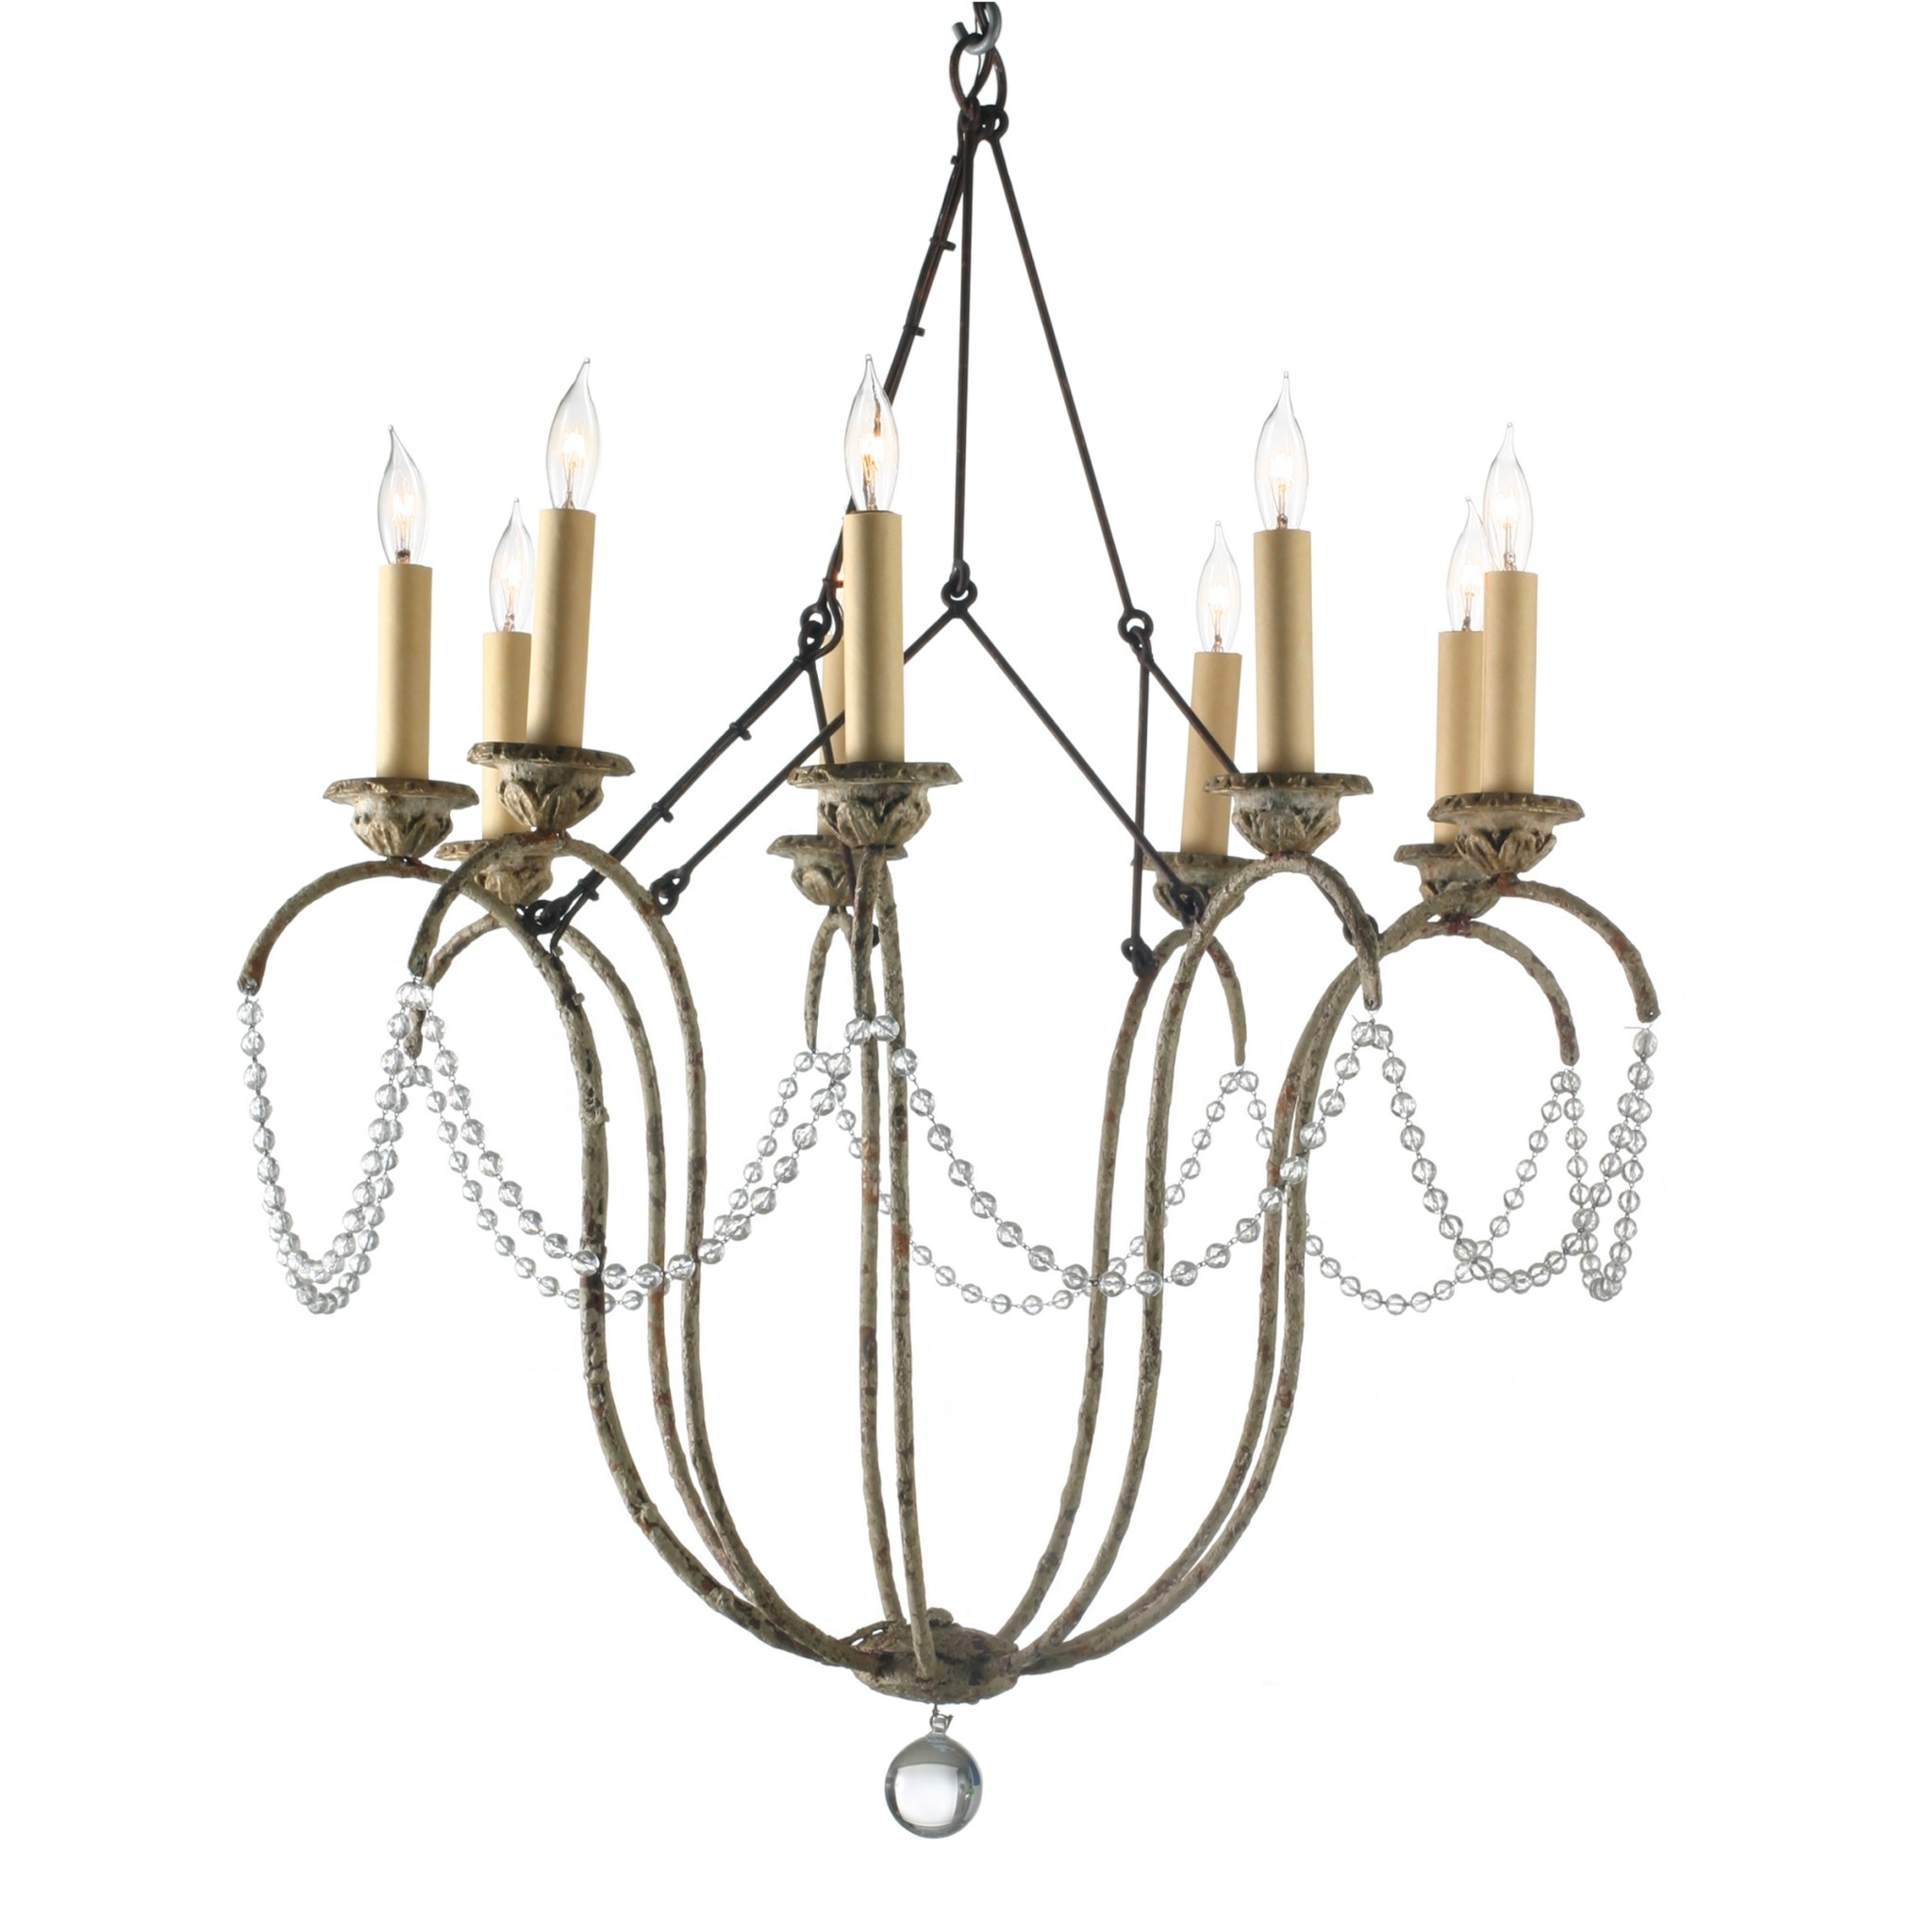 Niermann Weeks Intended For 2017 Italian Chandeliers Style (View 13 of 15)